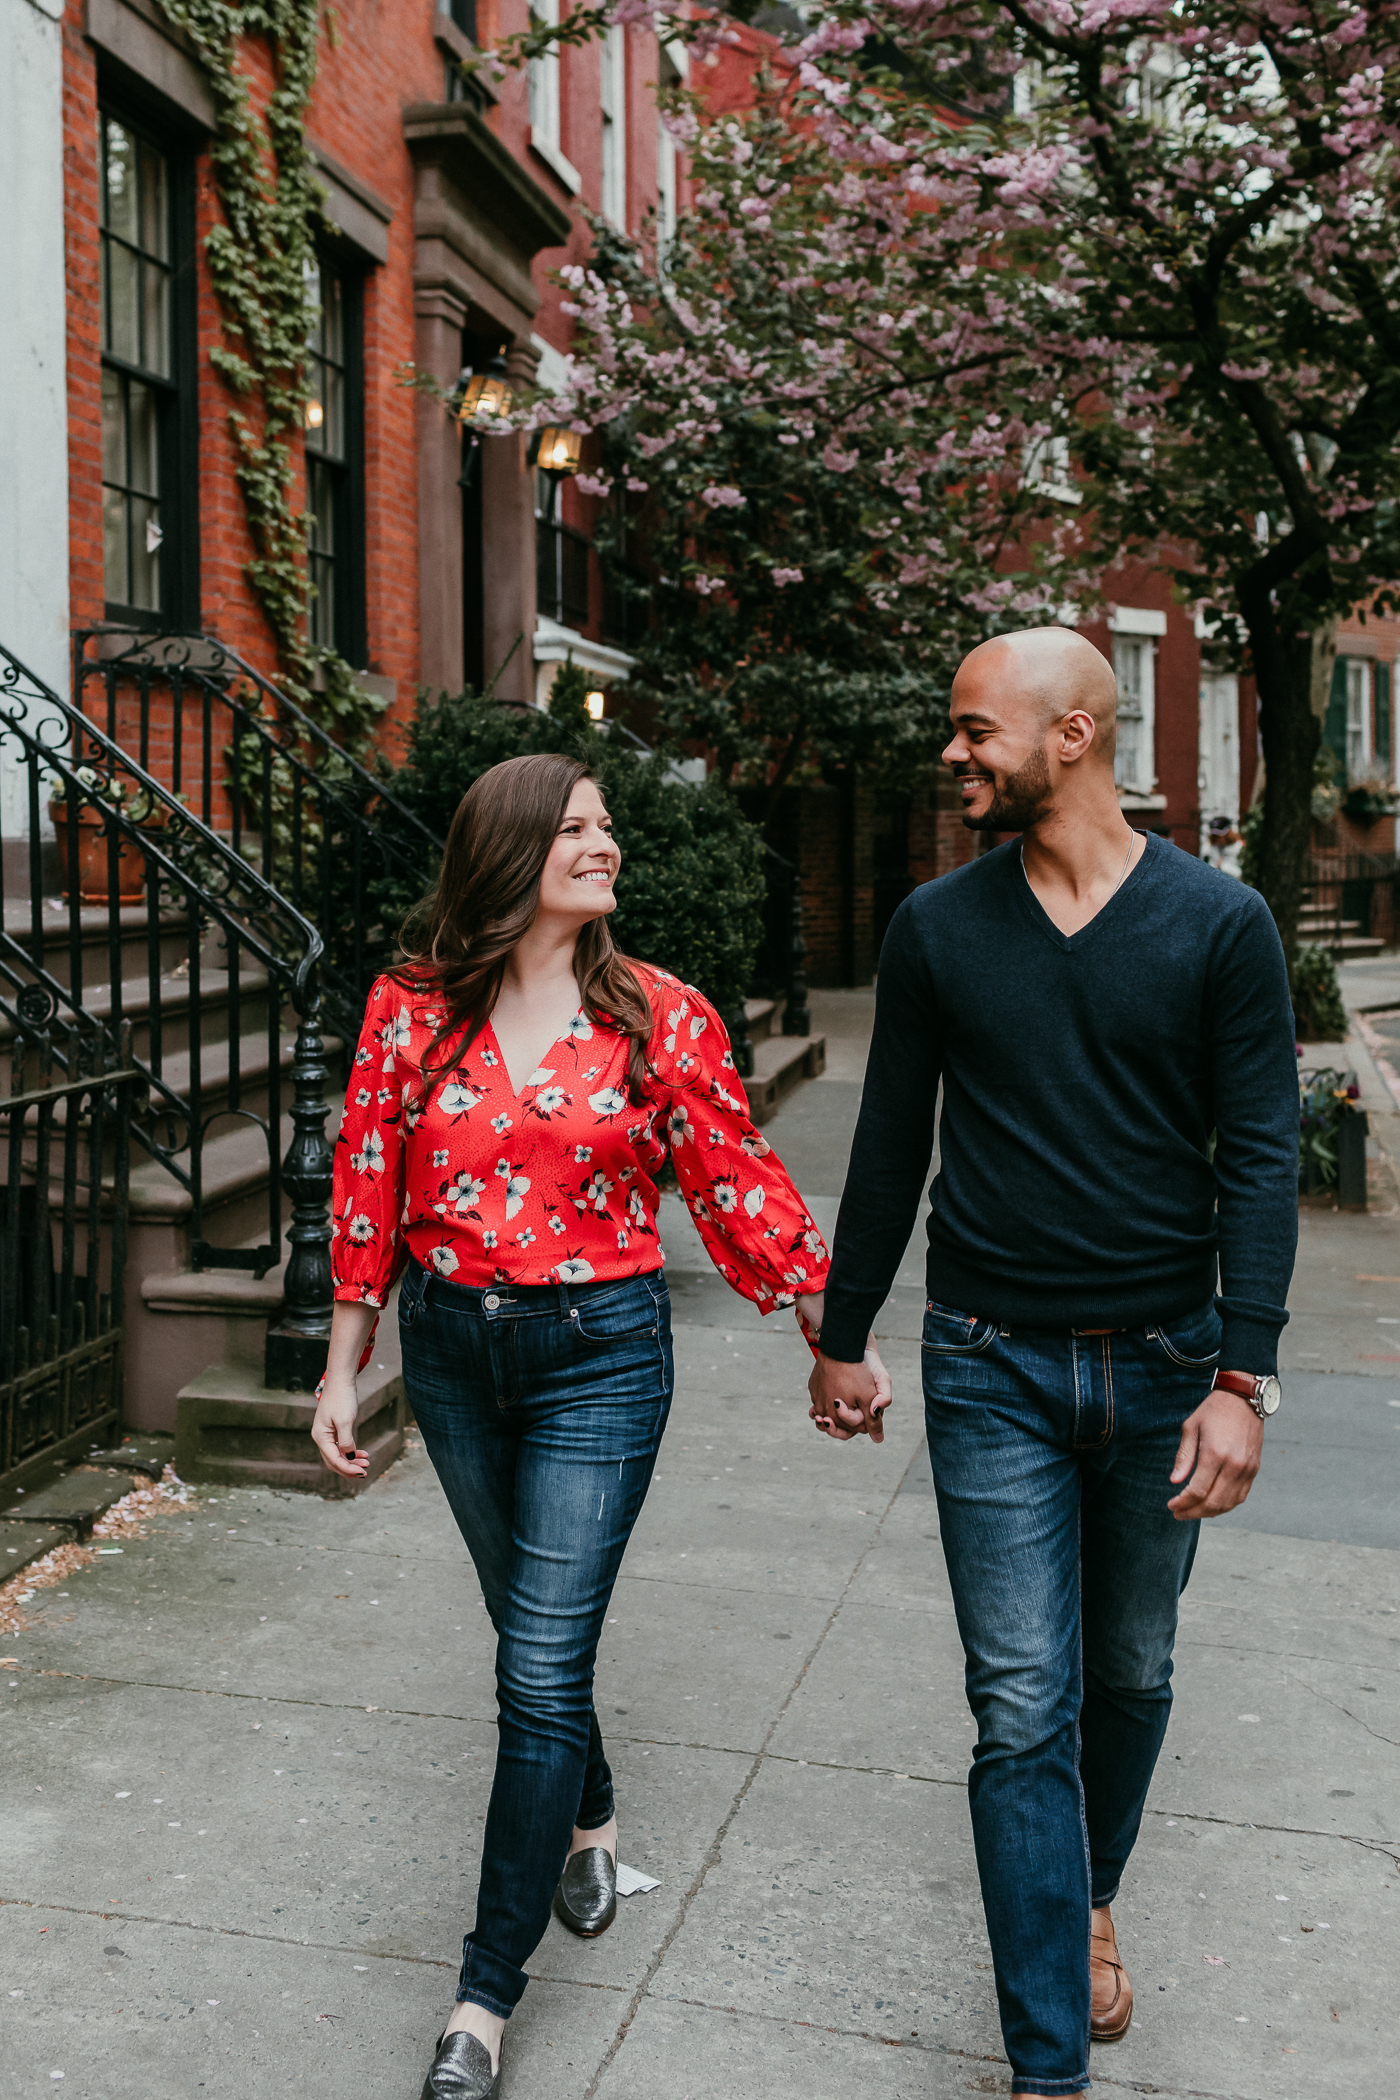 West-Village-Engagement-Photos-NYC-Wedding-Photographer-10.JPG